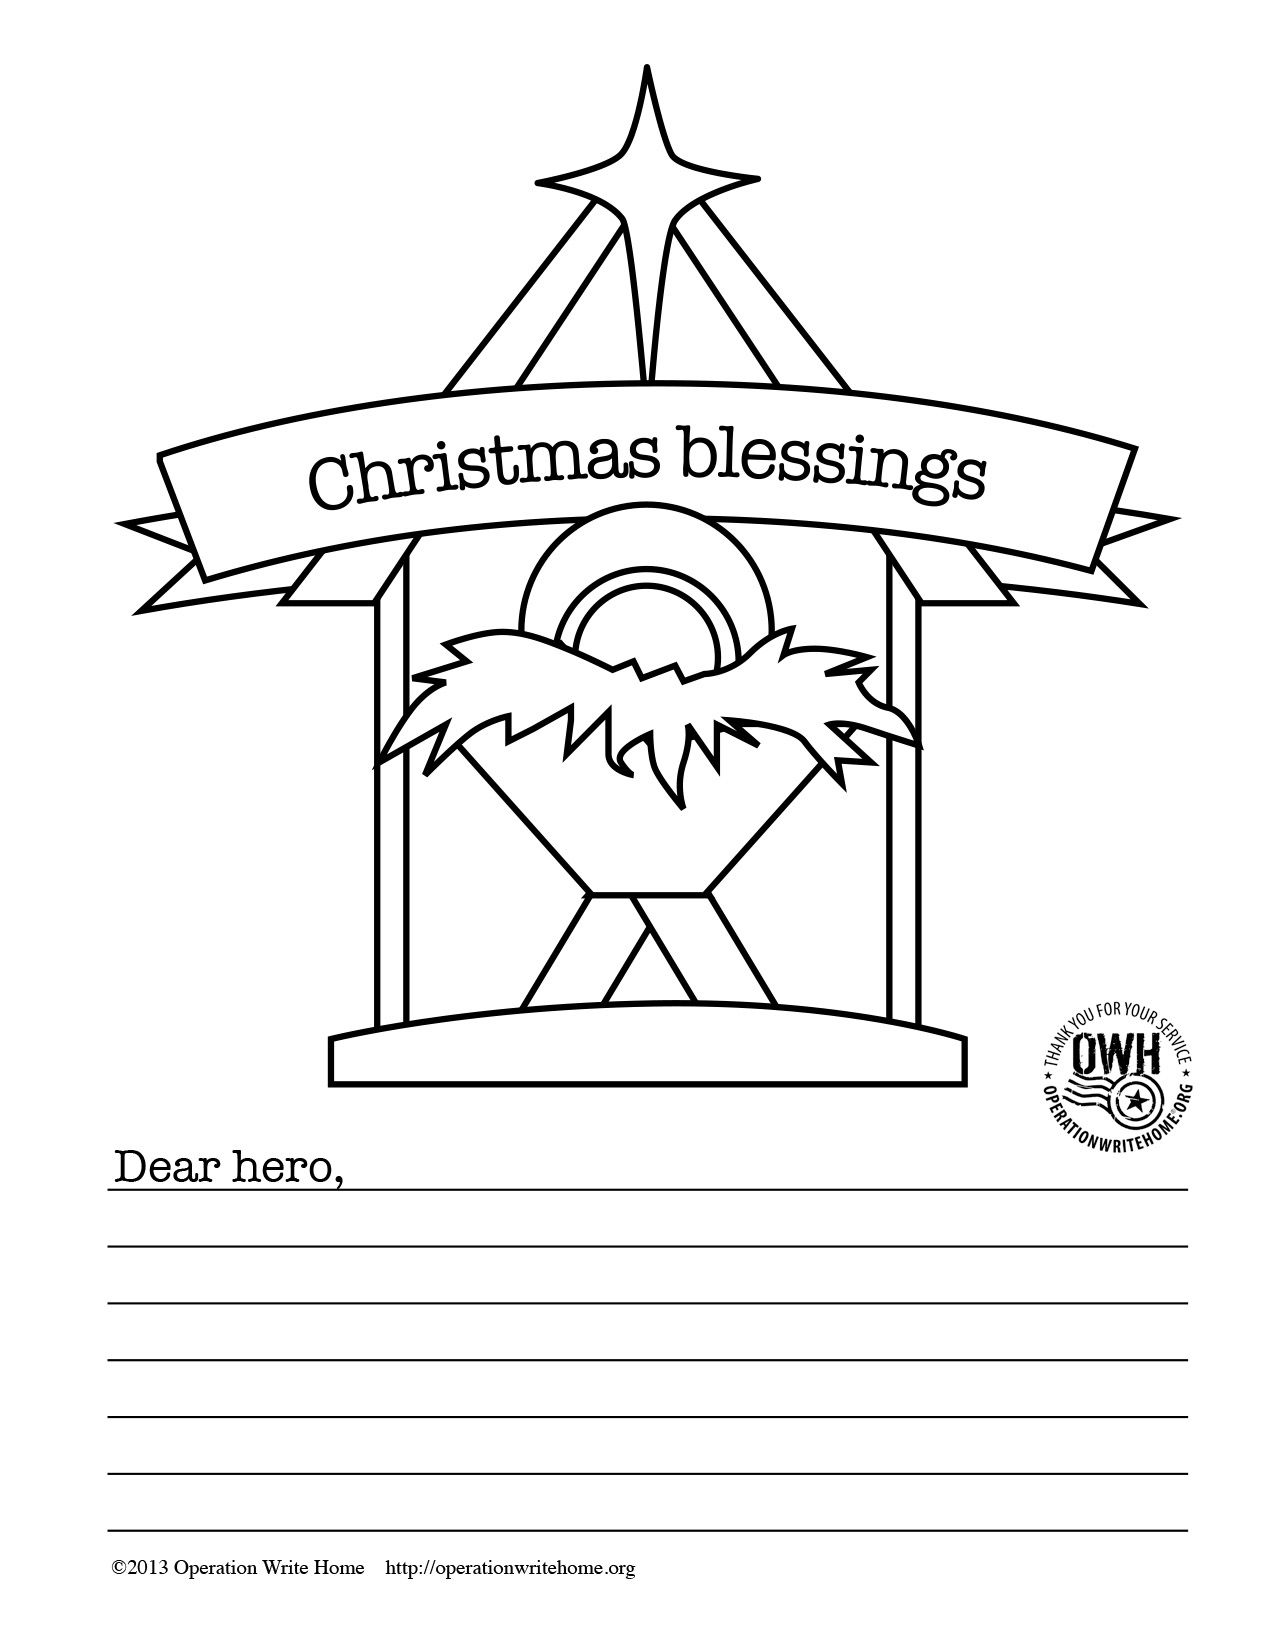 Coloring Pages Operation Write Home Military Christmas Cards Military Christmas Coloring Pages